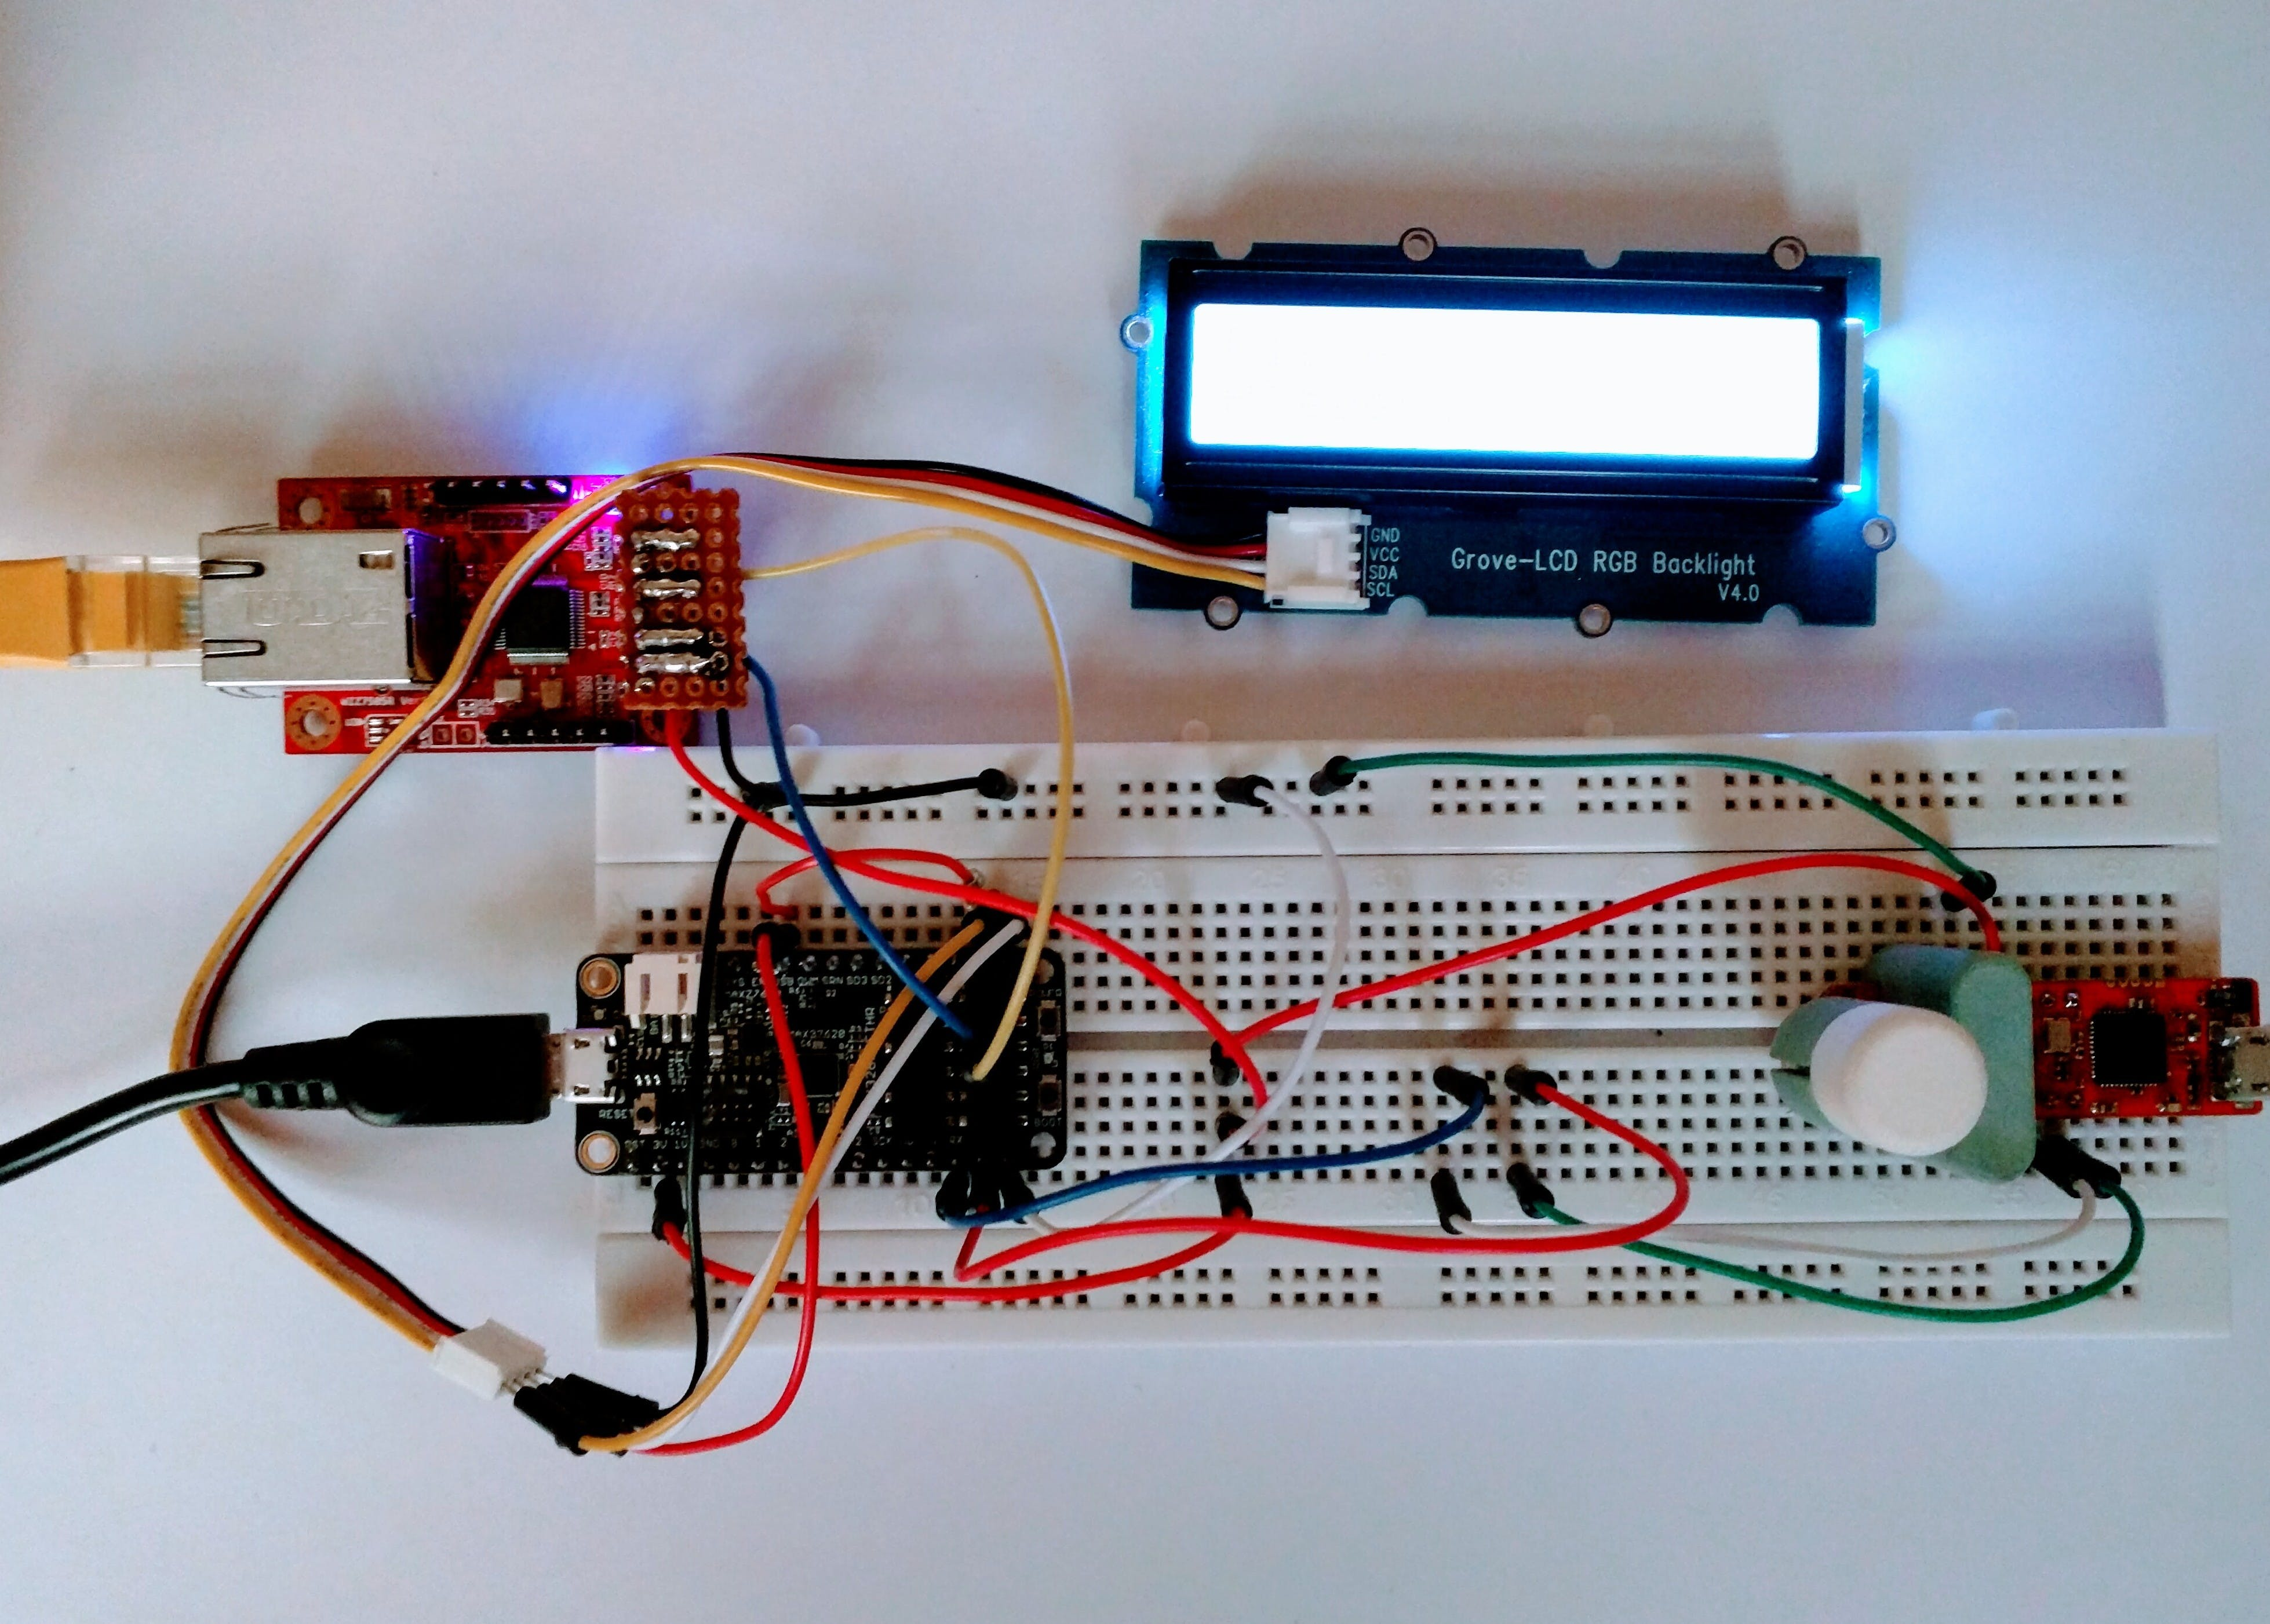 Digital scoreboard connected to Blynk using the WIZ750SR